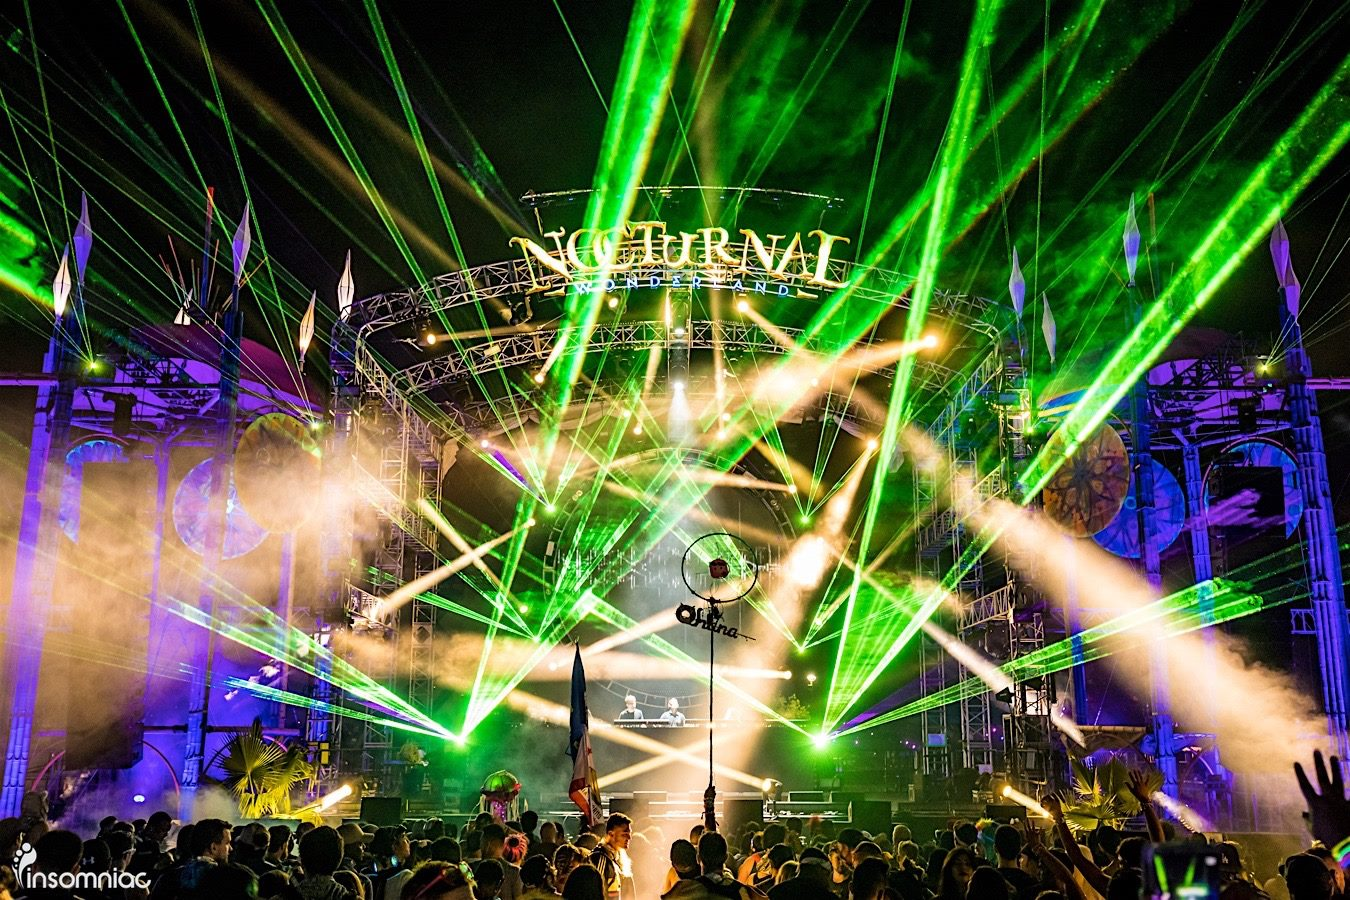 428 Arrests Made At Nocturnal Wonderland, 0 Deaths Reported